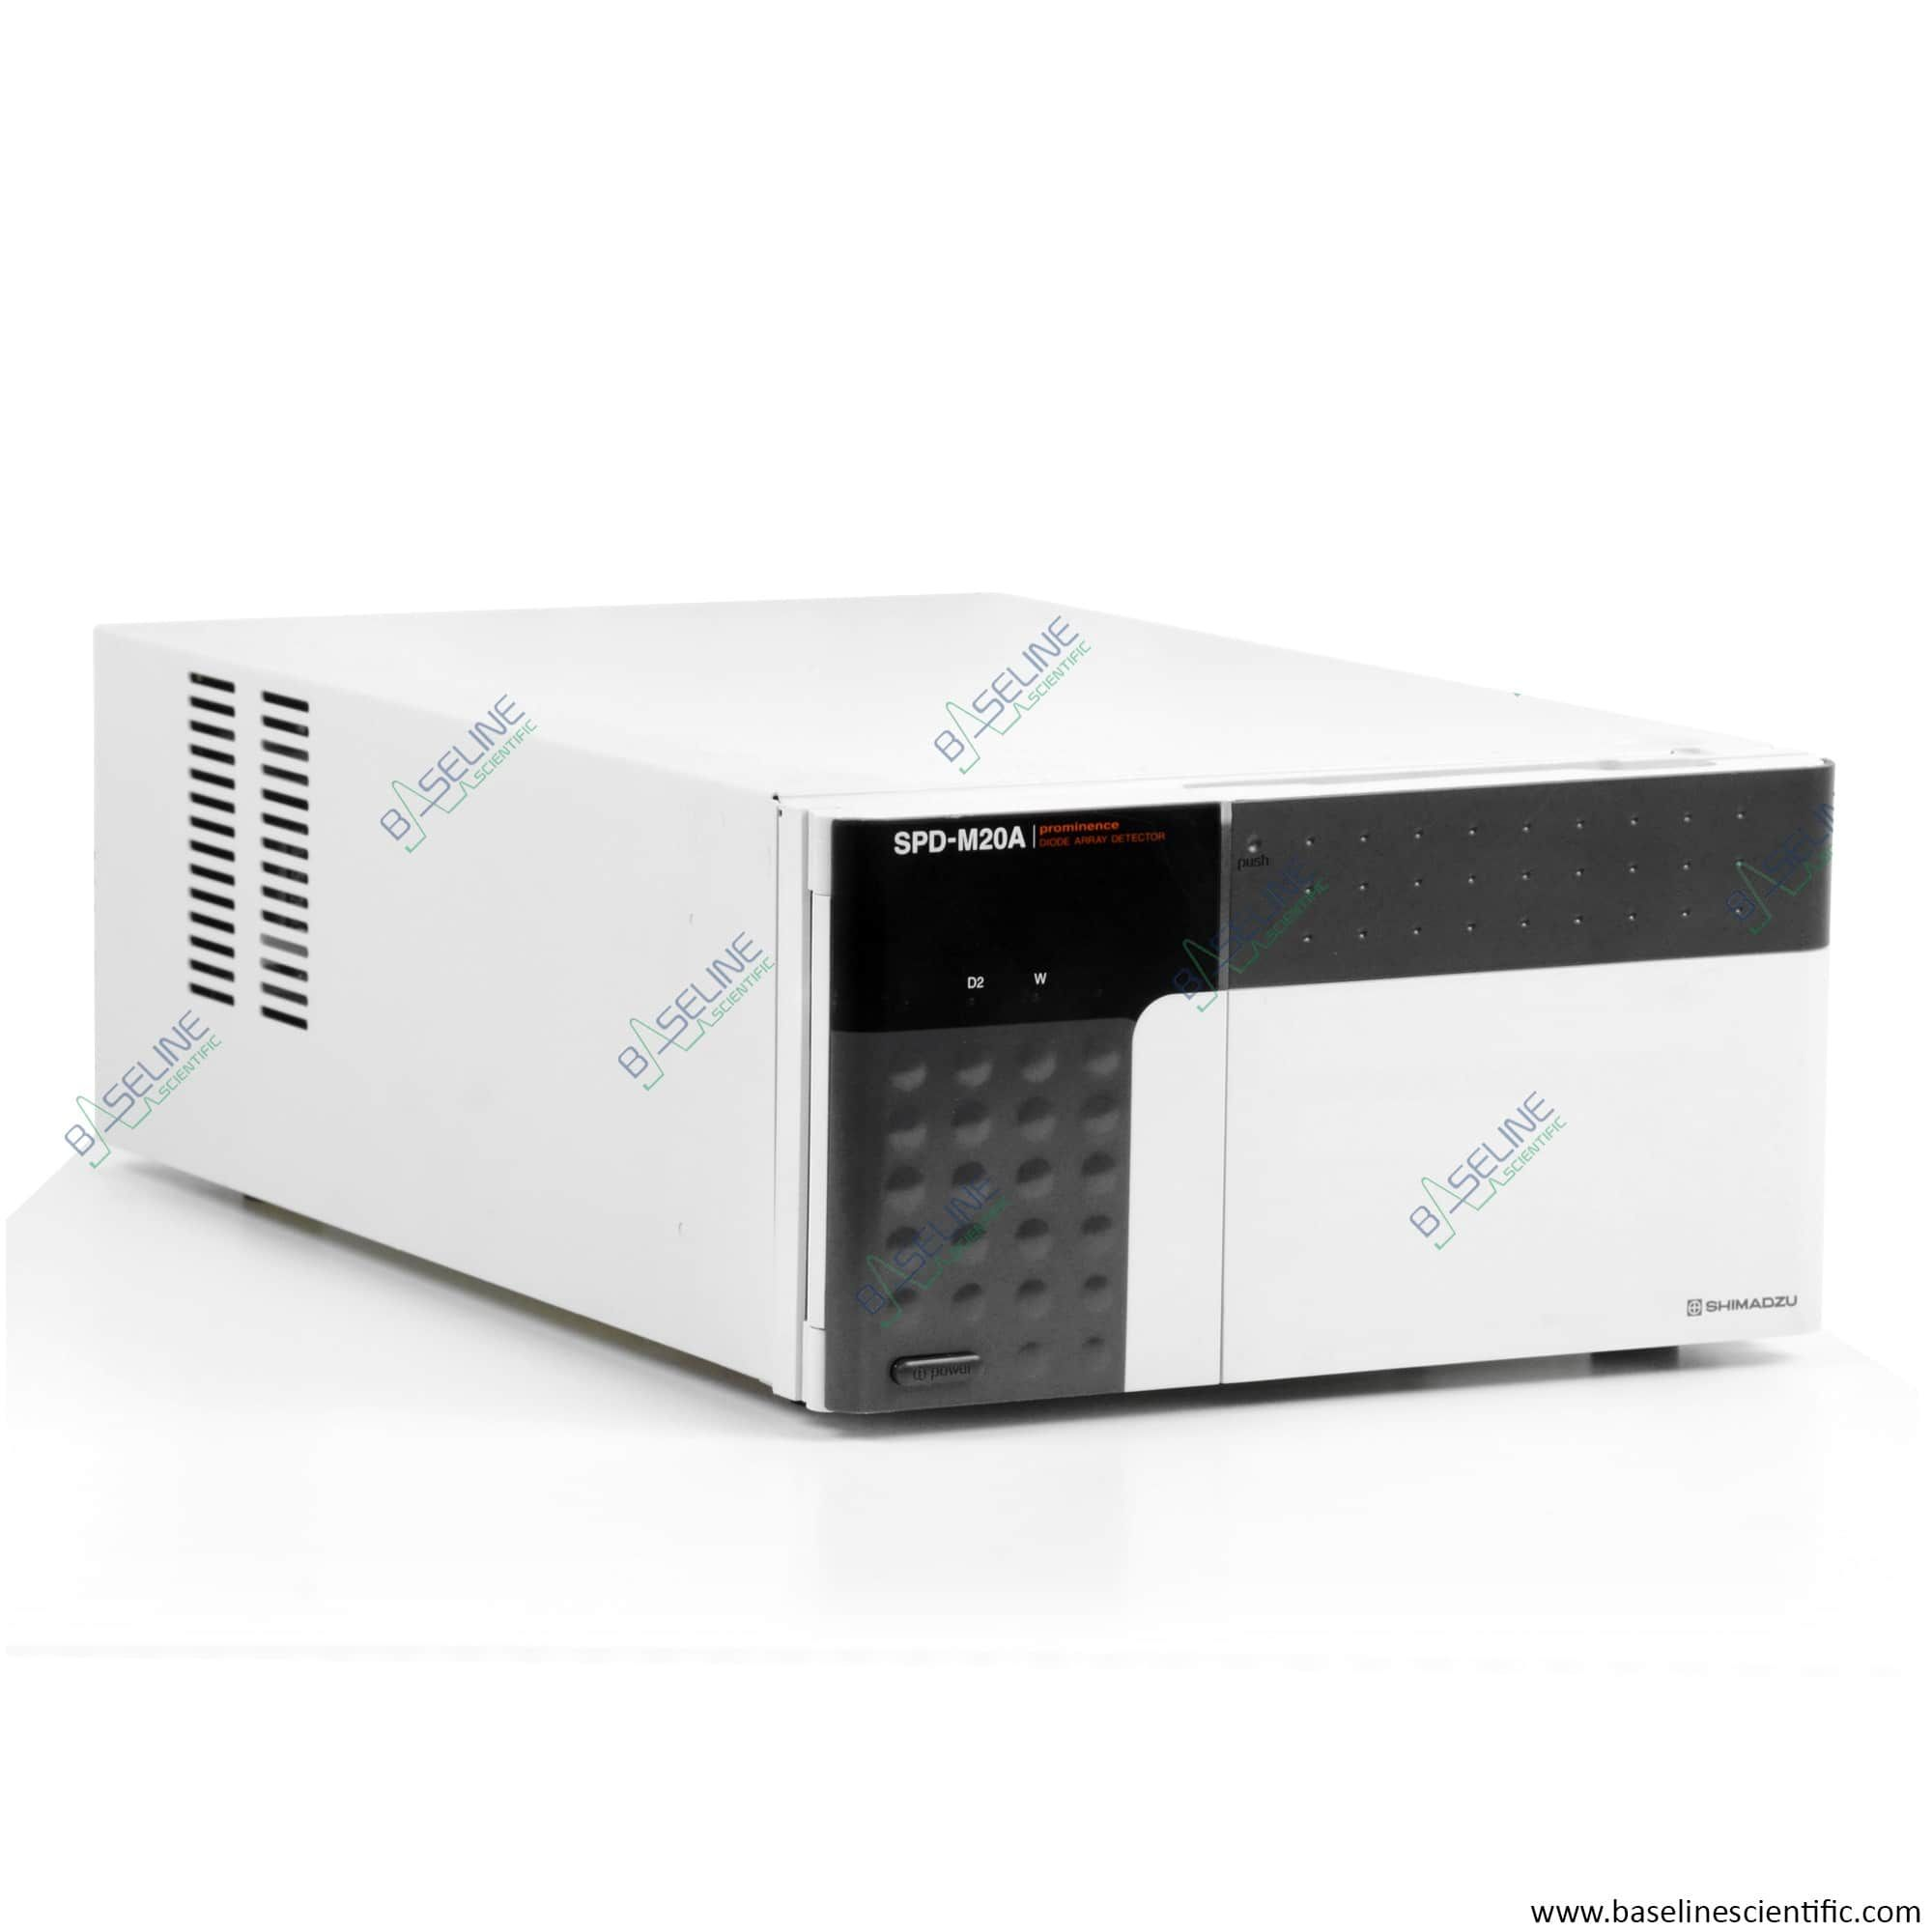 Refurbished Shimadzu SPD-M20A Prominence UV/VIS Detector with ONE YEAR WARRANTY